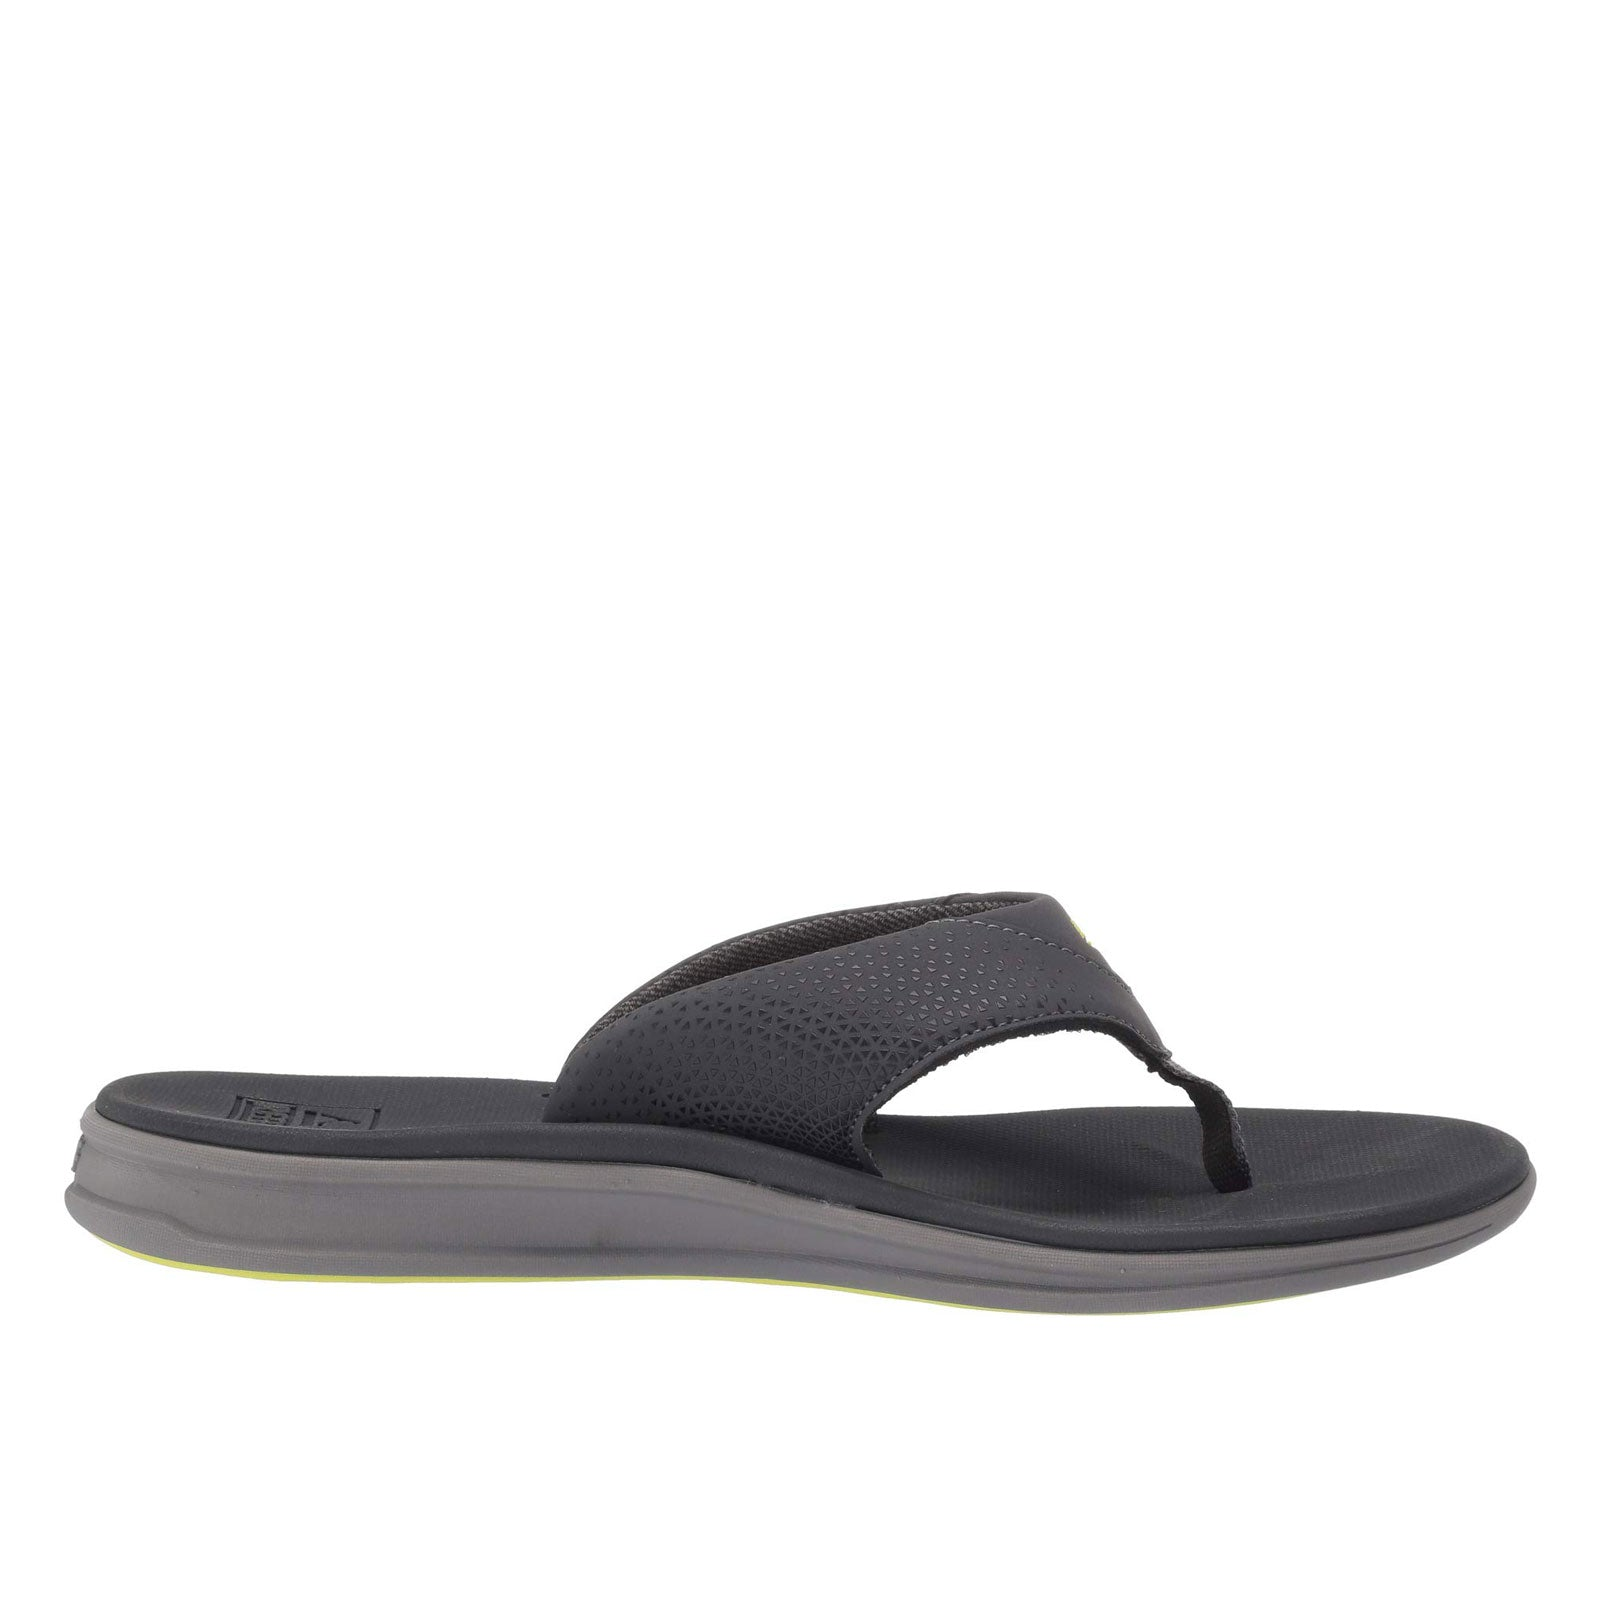 Reef Rover Casual Flip Flop-Grey/Lime